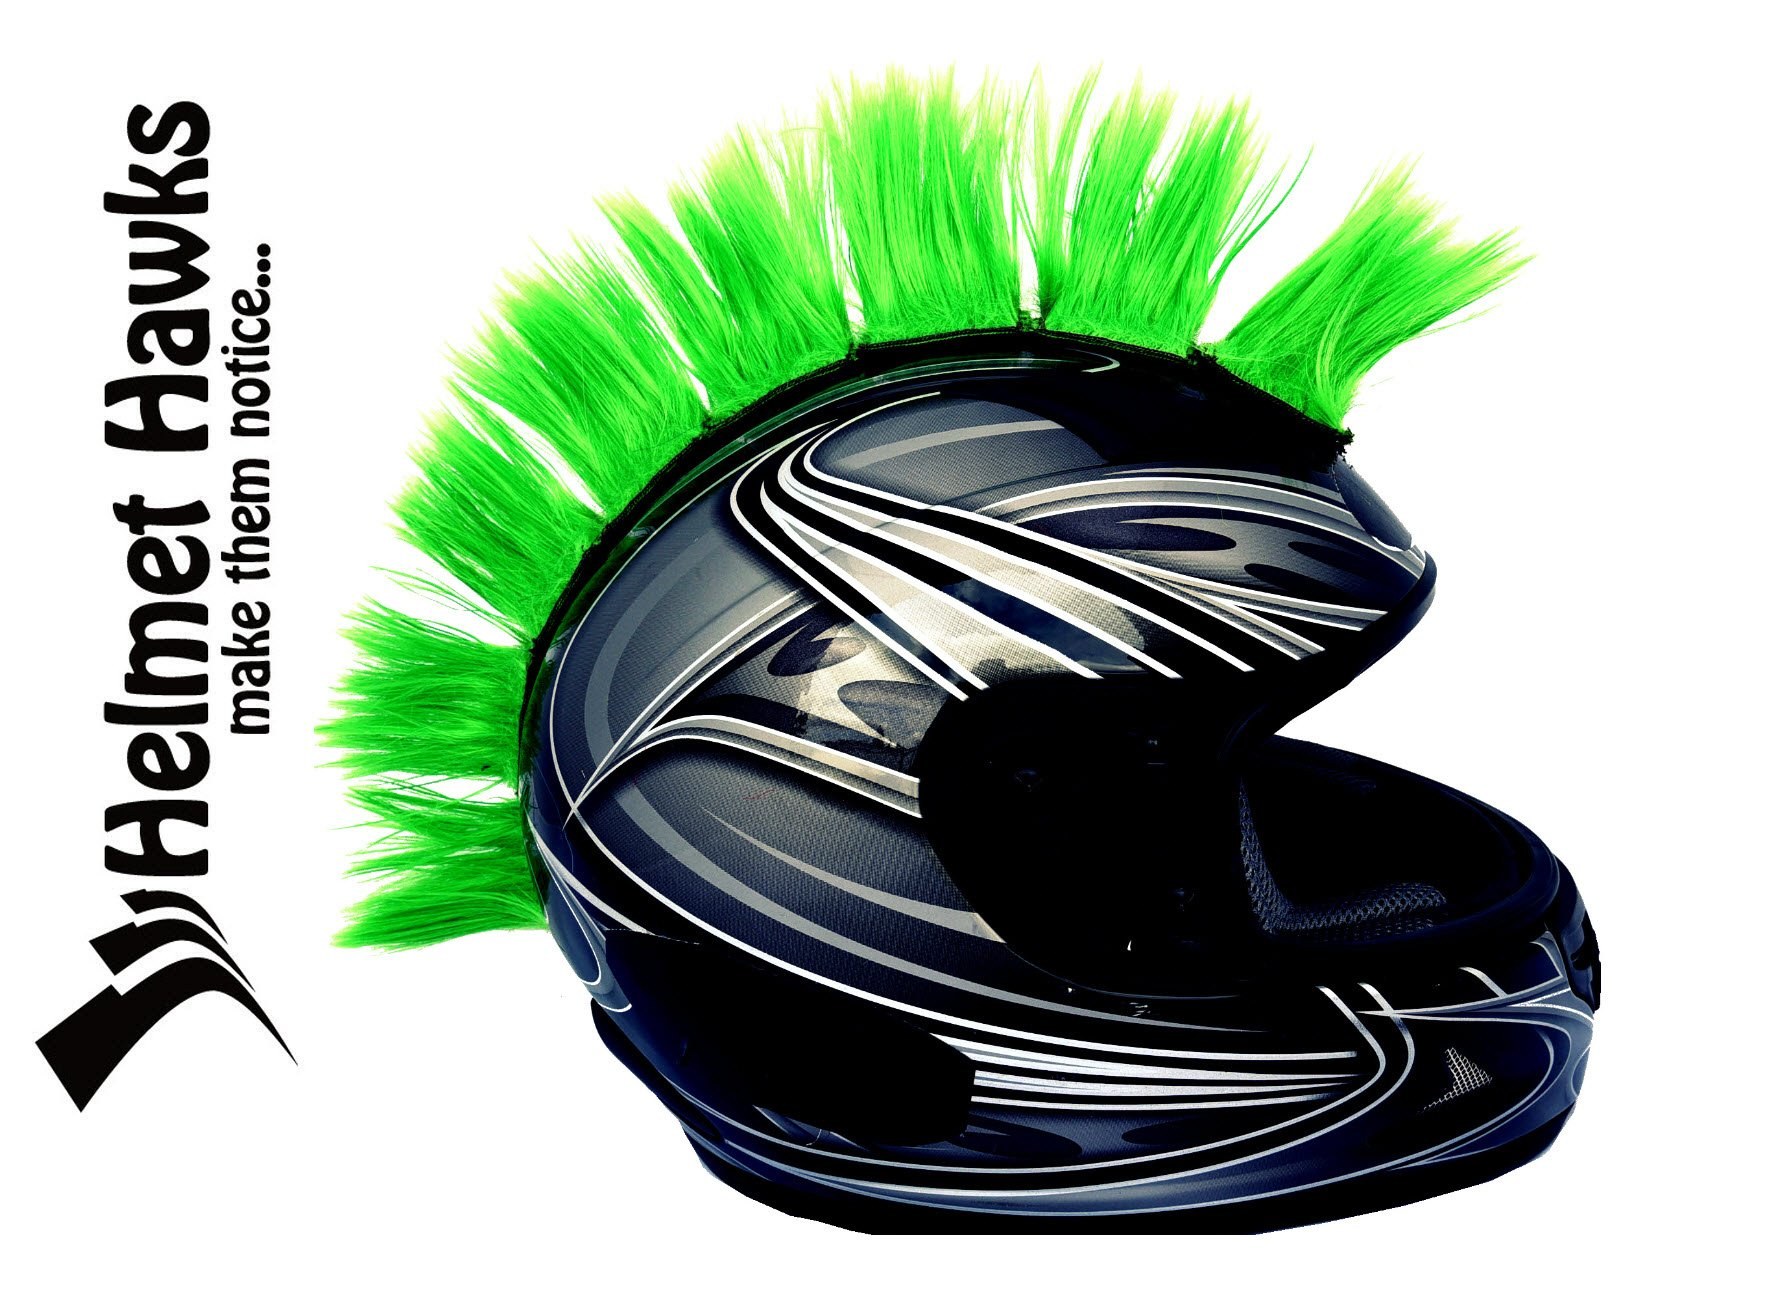 Helmet Hawks Motorcycle, Snowboard Helmet Mohawk w/ Sticky Velcro Adhesive (8) Hair Patches 2'' long x 3'' Tall - Fluorescent Lime Green